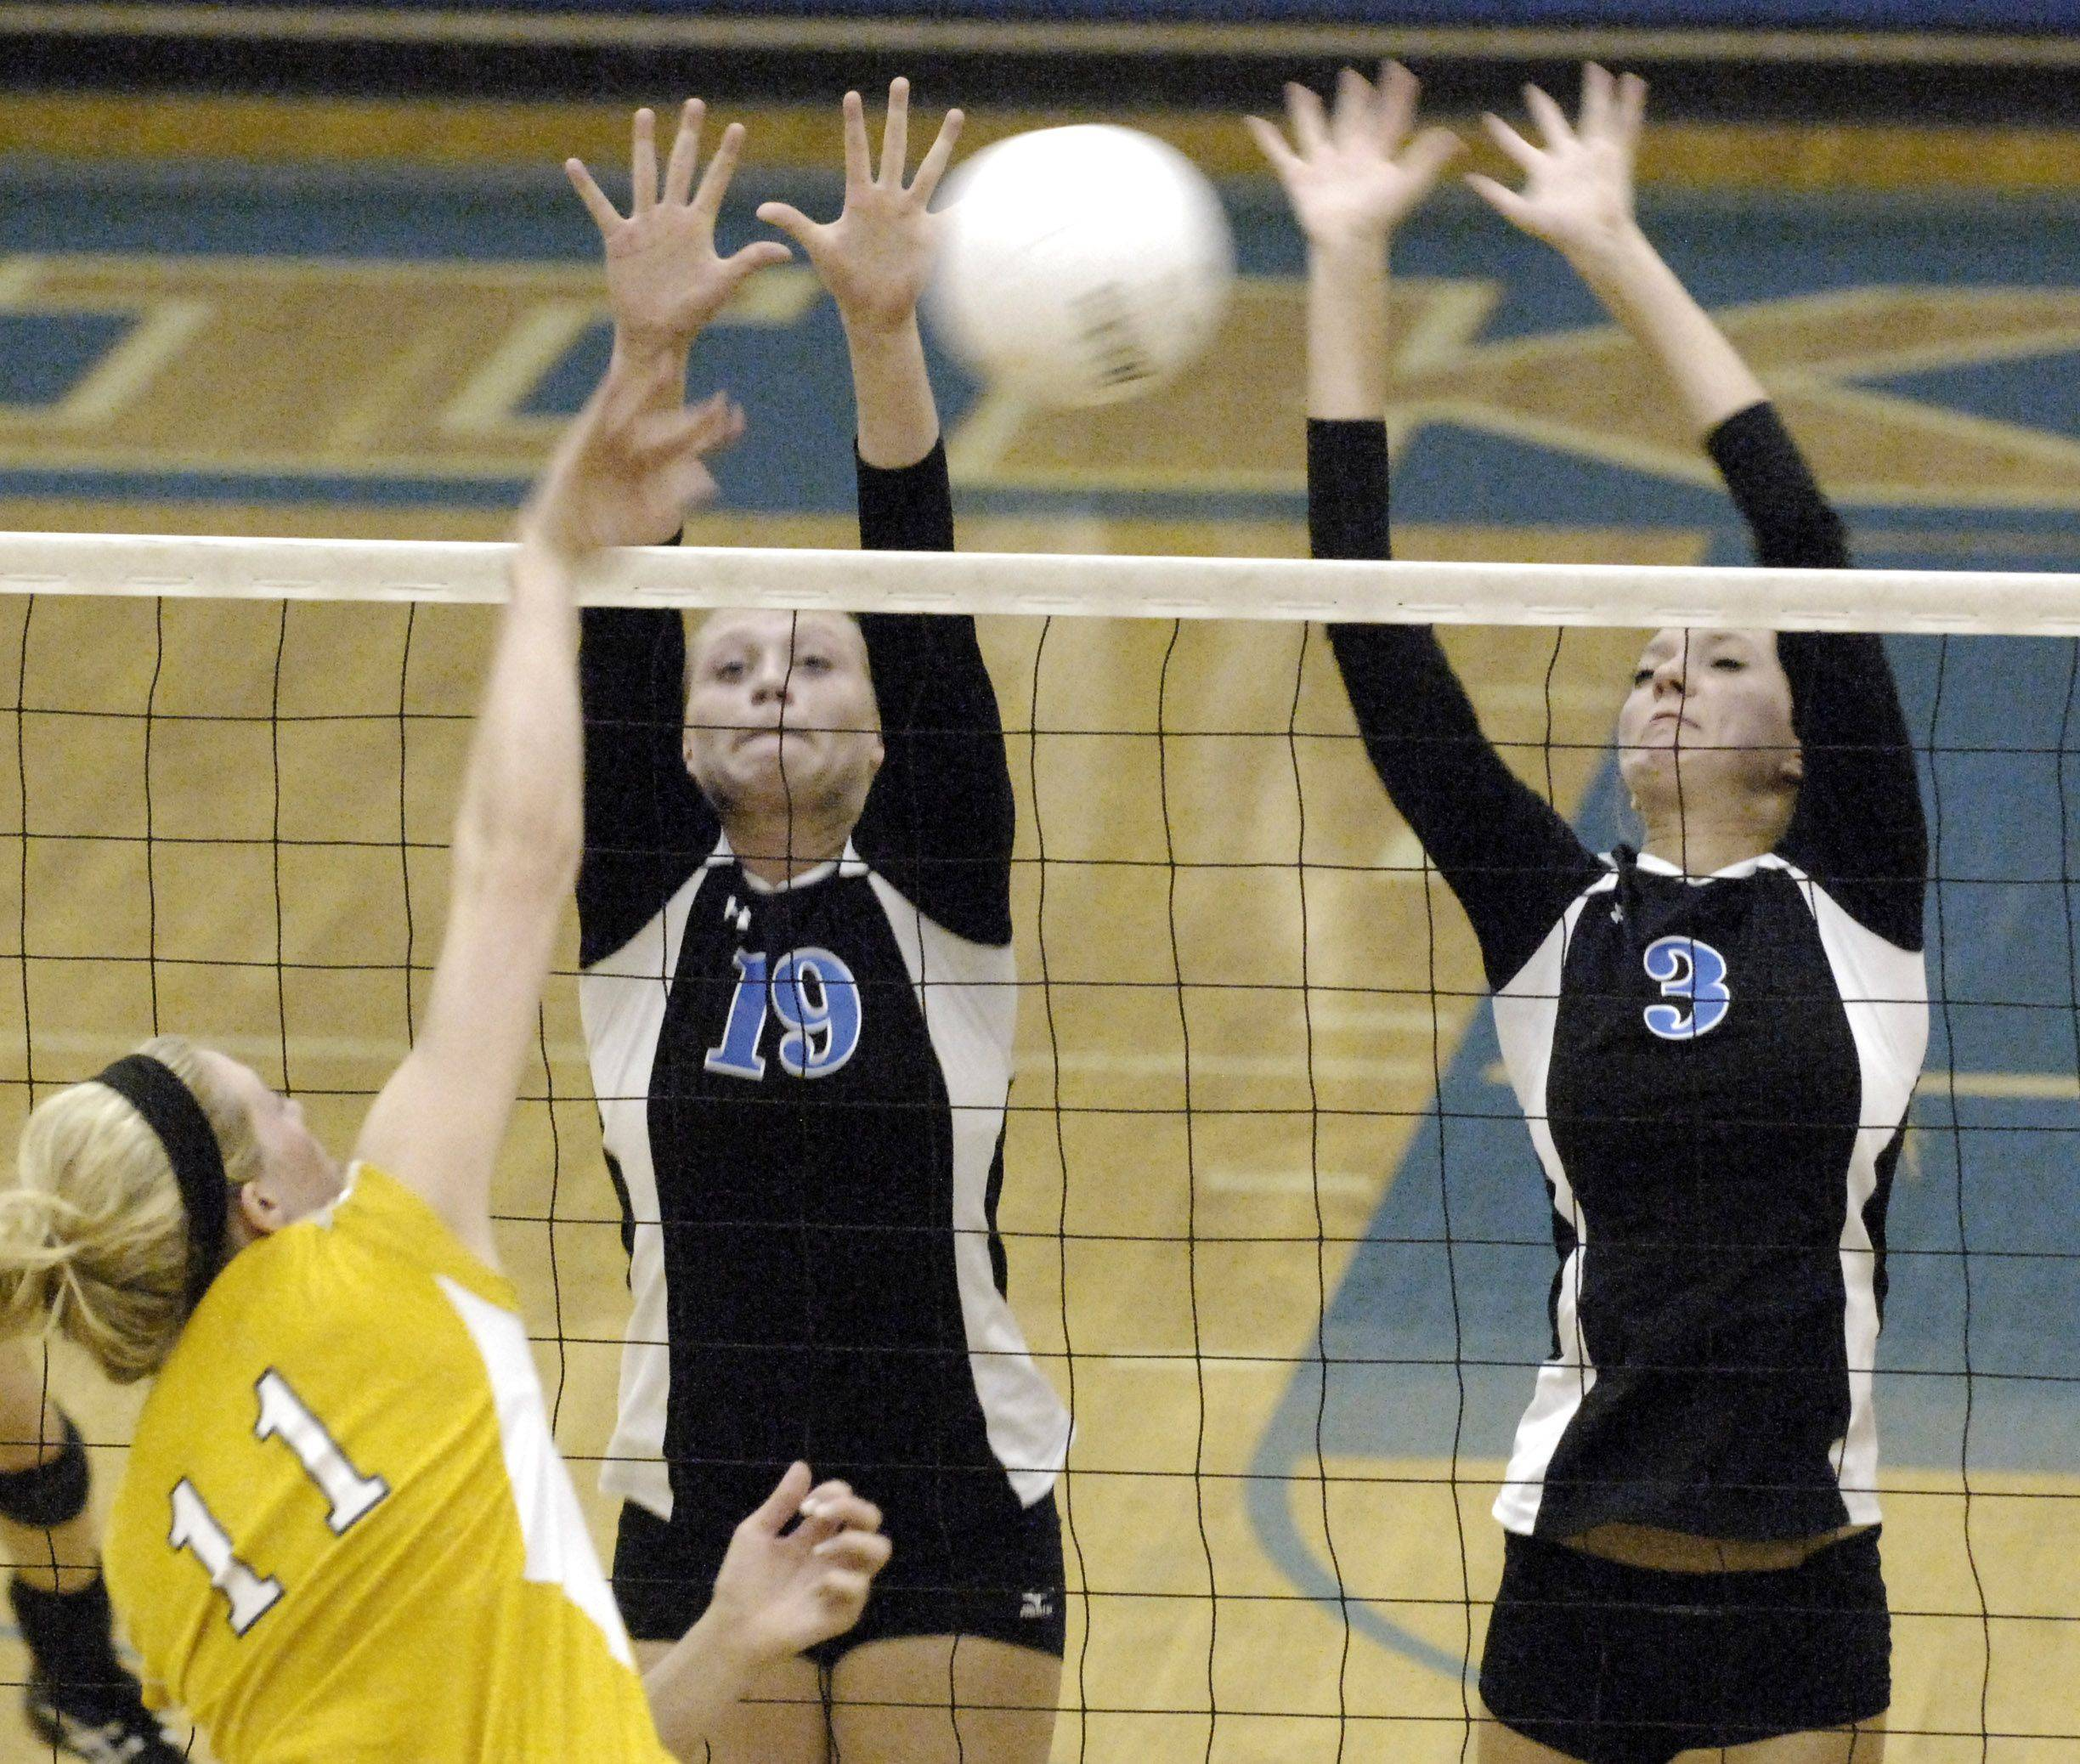 Geneva's Melissa Hanika, left, and Taylor Otto go up to block a spike by Neuqua Valley's Callie Huebener during Thursday's game in Geneva.